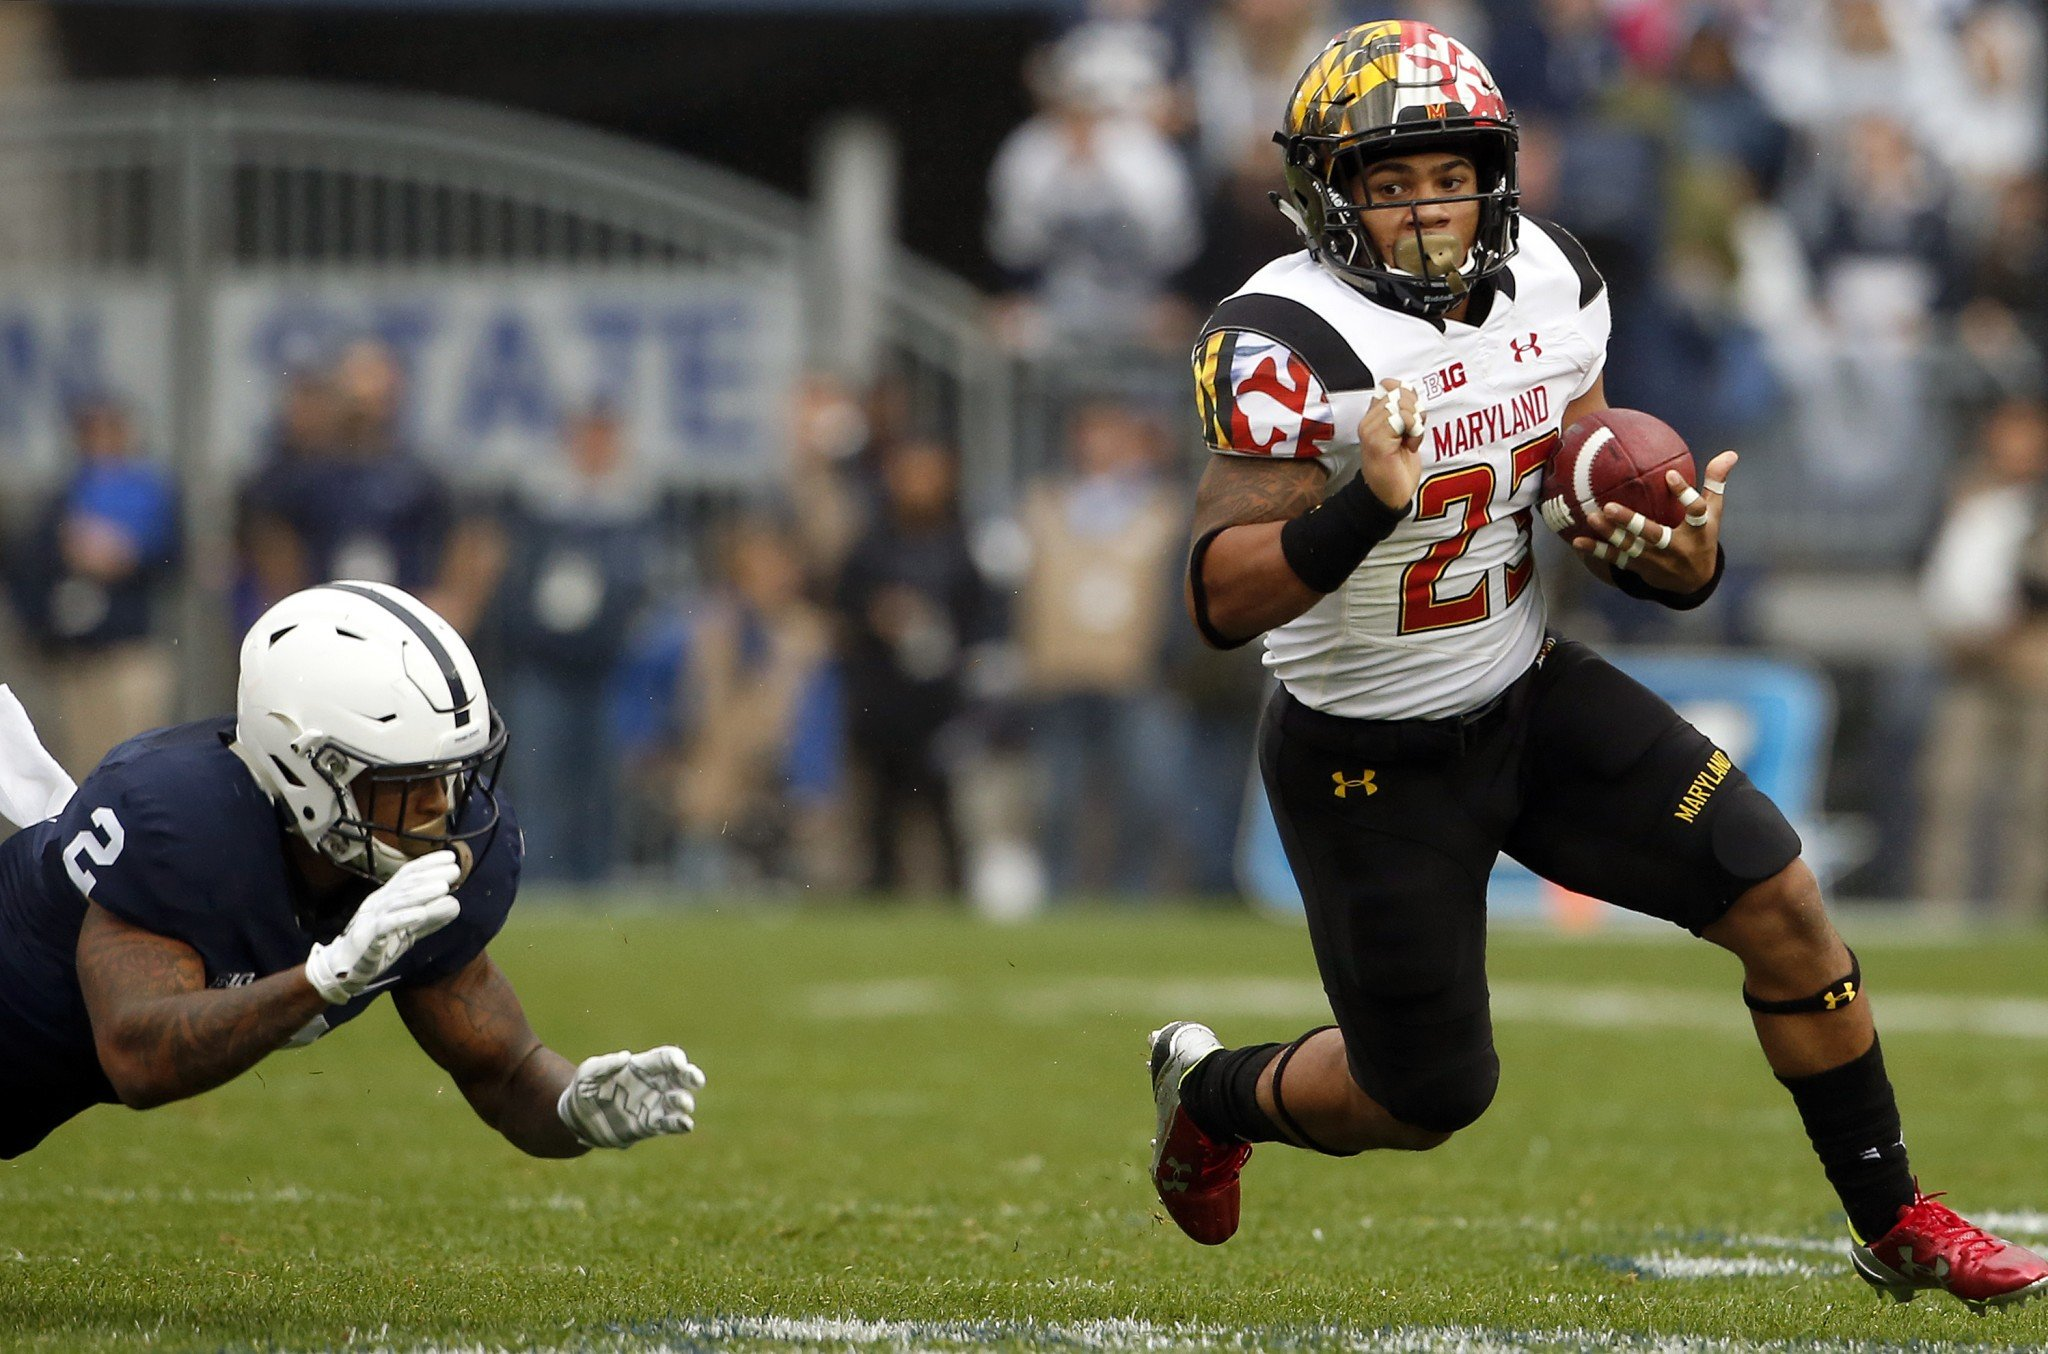 Lorenzo Harrison leads Maryland in rushing touchdowns. (AP Photo/Chris Knight)